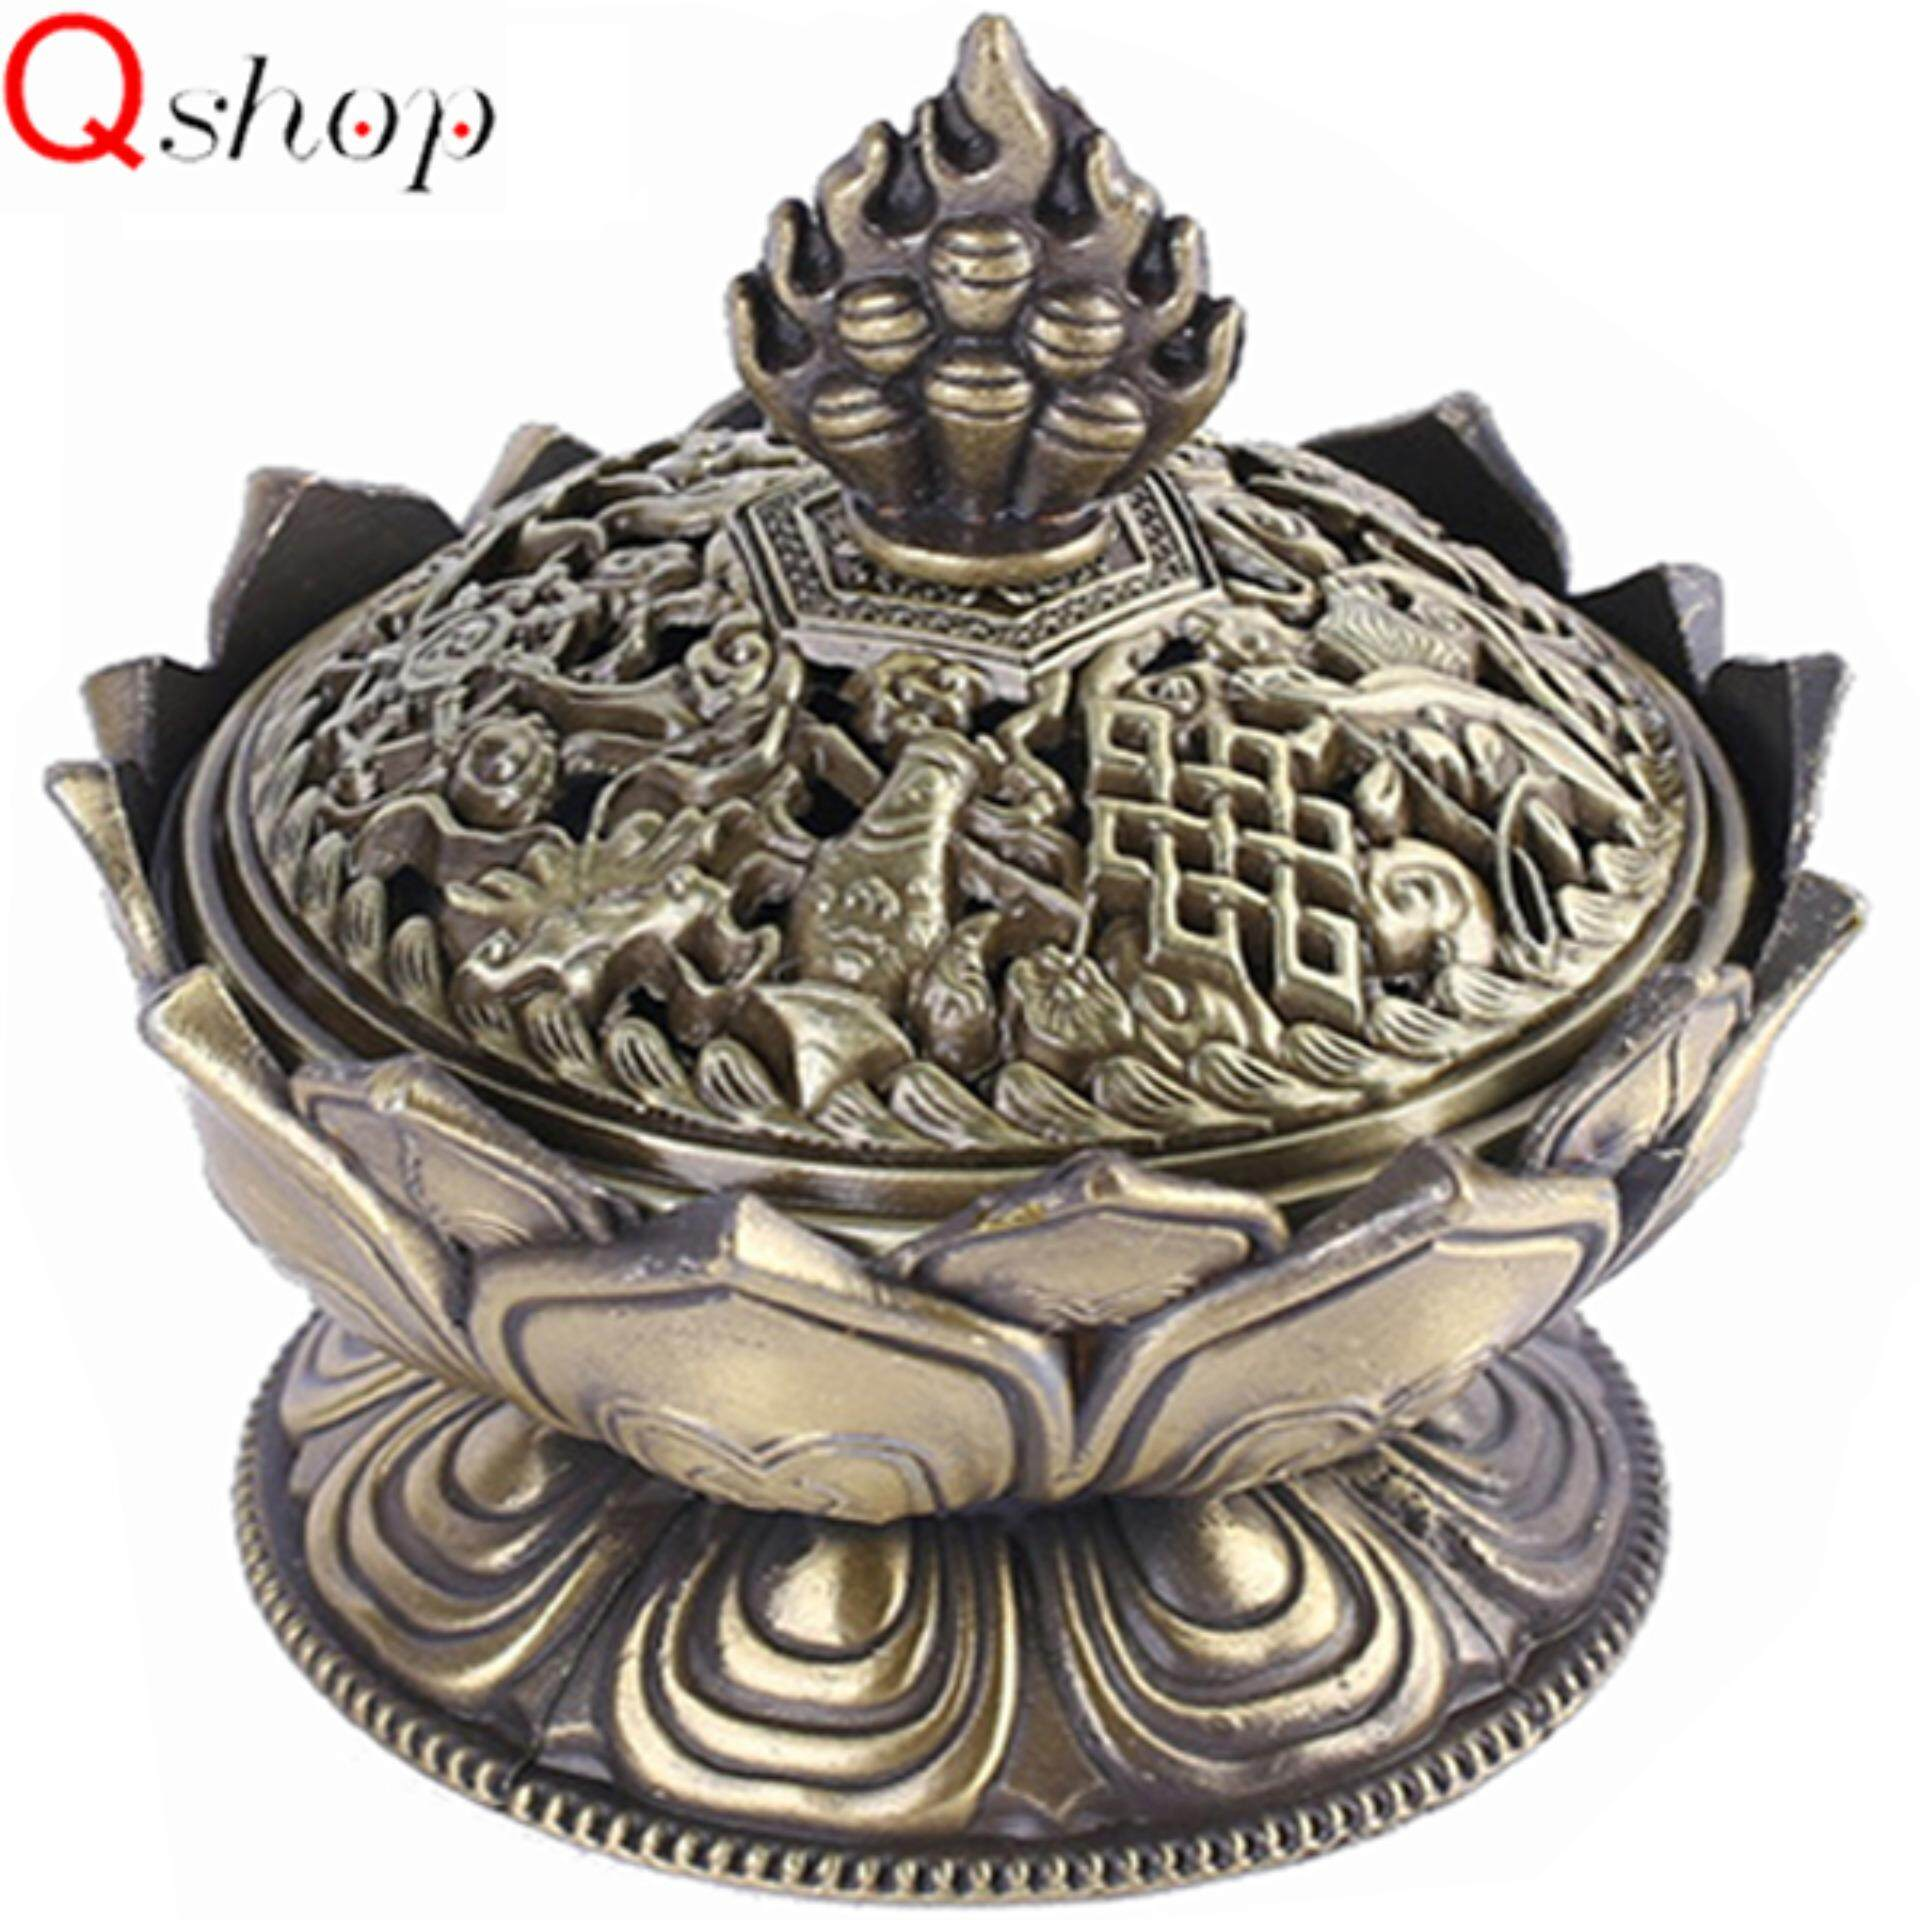 Q-shop Handmade Incense Tower Burner Alloy Incense Burner Lotus Aroma Furnace Creative Gifts Decorative Crafts Incense Burner Incense Furnace Sandalwood Furnace - intl